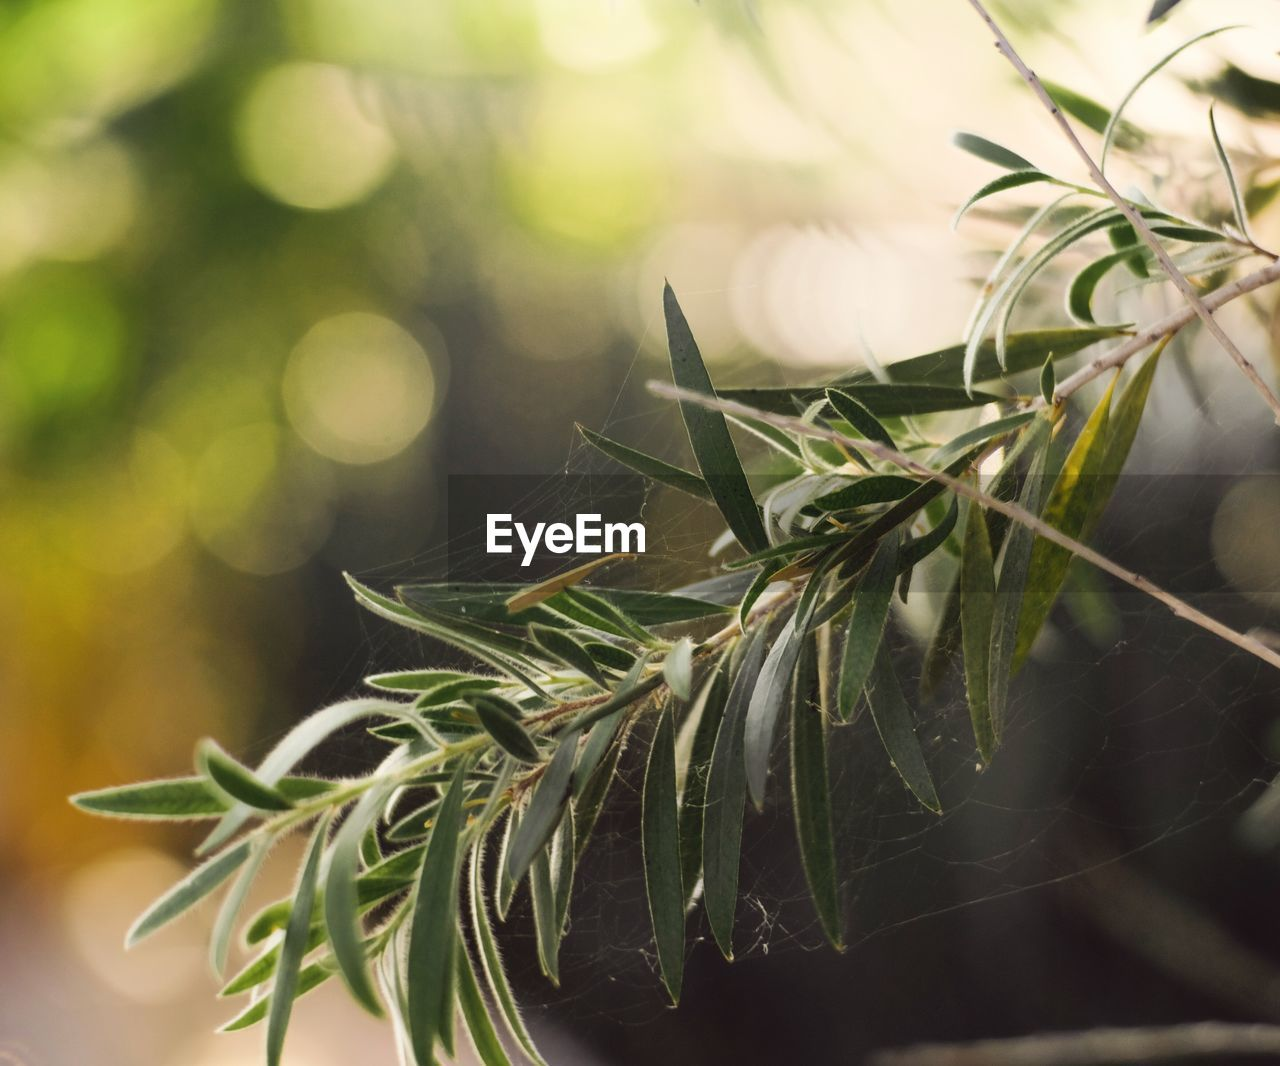 close-up, plant, green color, leaf, plant part, selective focus, nature, no people, focus on foreground, growth, freshness, day, holiday, rosemary, tree, celebration, food and drink, beauty in nature, decoration, herb, needle - plant part, leaves